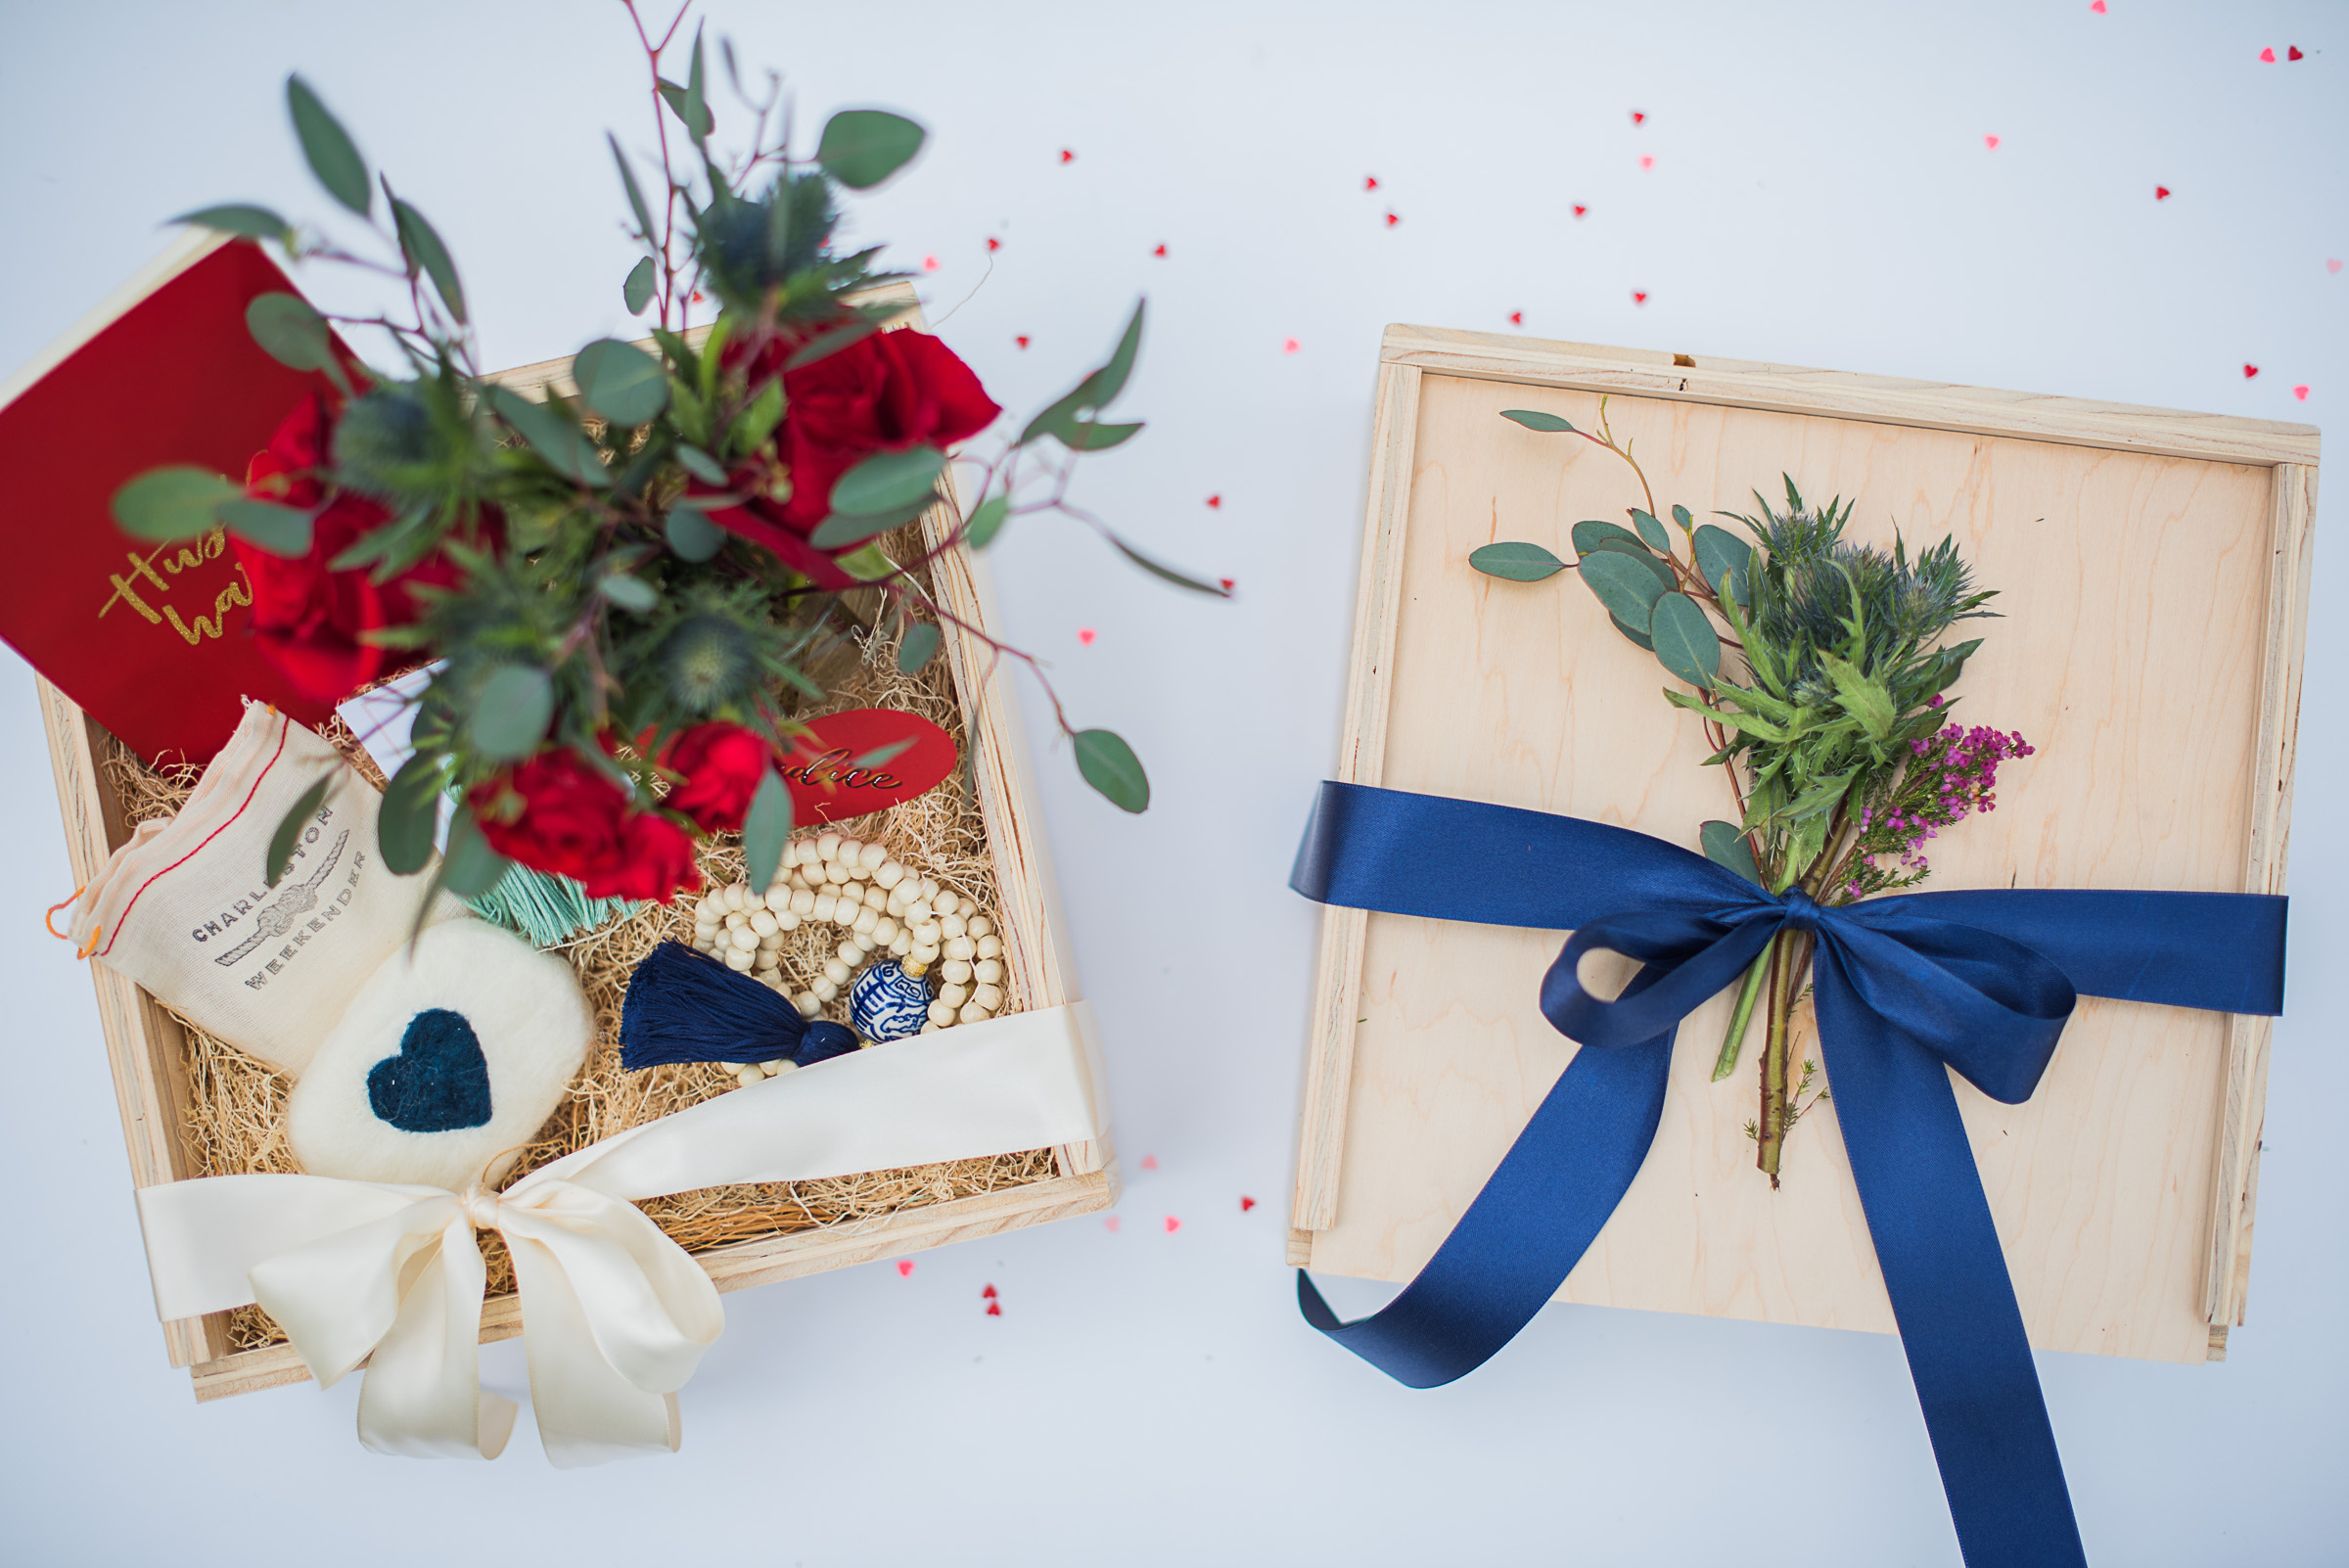 Gorgeous gift boxes from The Blue Root, Featuring Felted Soaps from The Charleston Weekender, Hand Lettered Notebooks from The Town Serif & Our Signature Tassel Earrings & Elliotborough Necklace